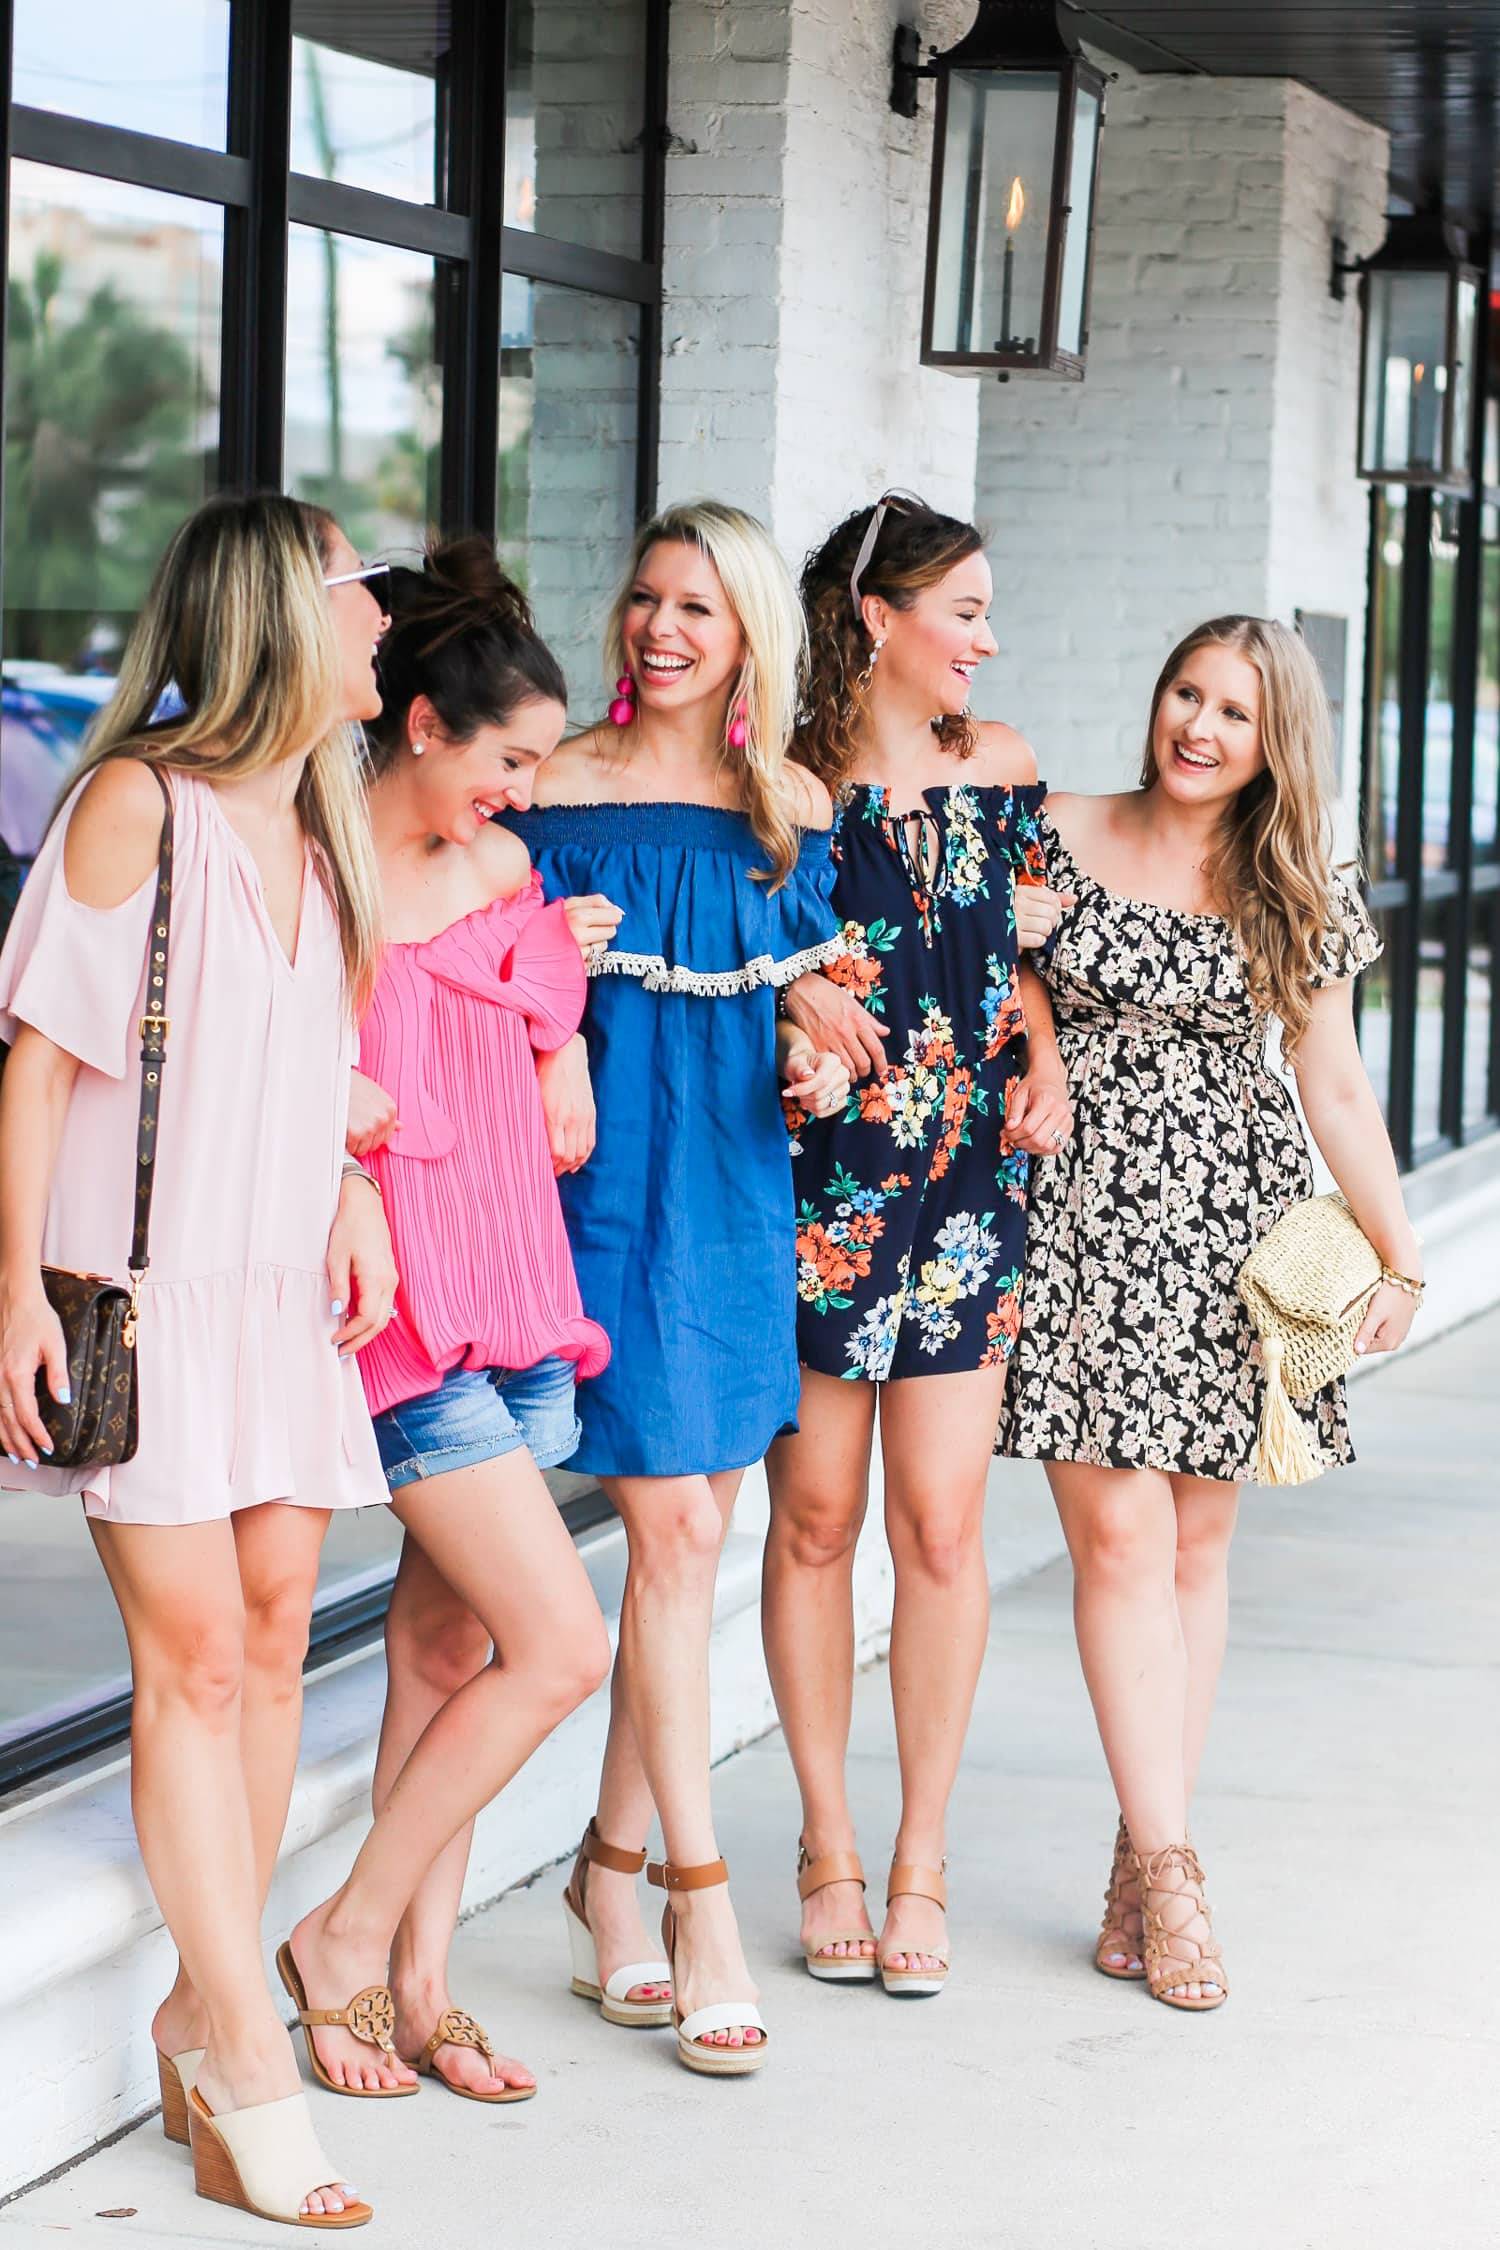 Orlando and Tampa fashion bloggers: Meet at The Barre, Diary of A Debutante, So Sarah Hunt, My Life Well Loved, Ashley Brooke Nicholas